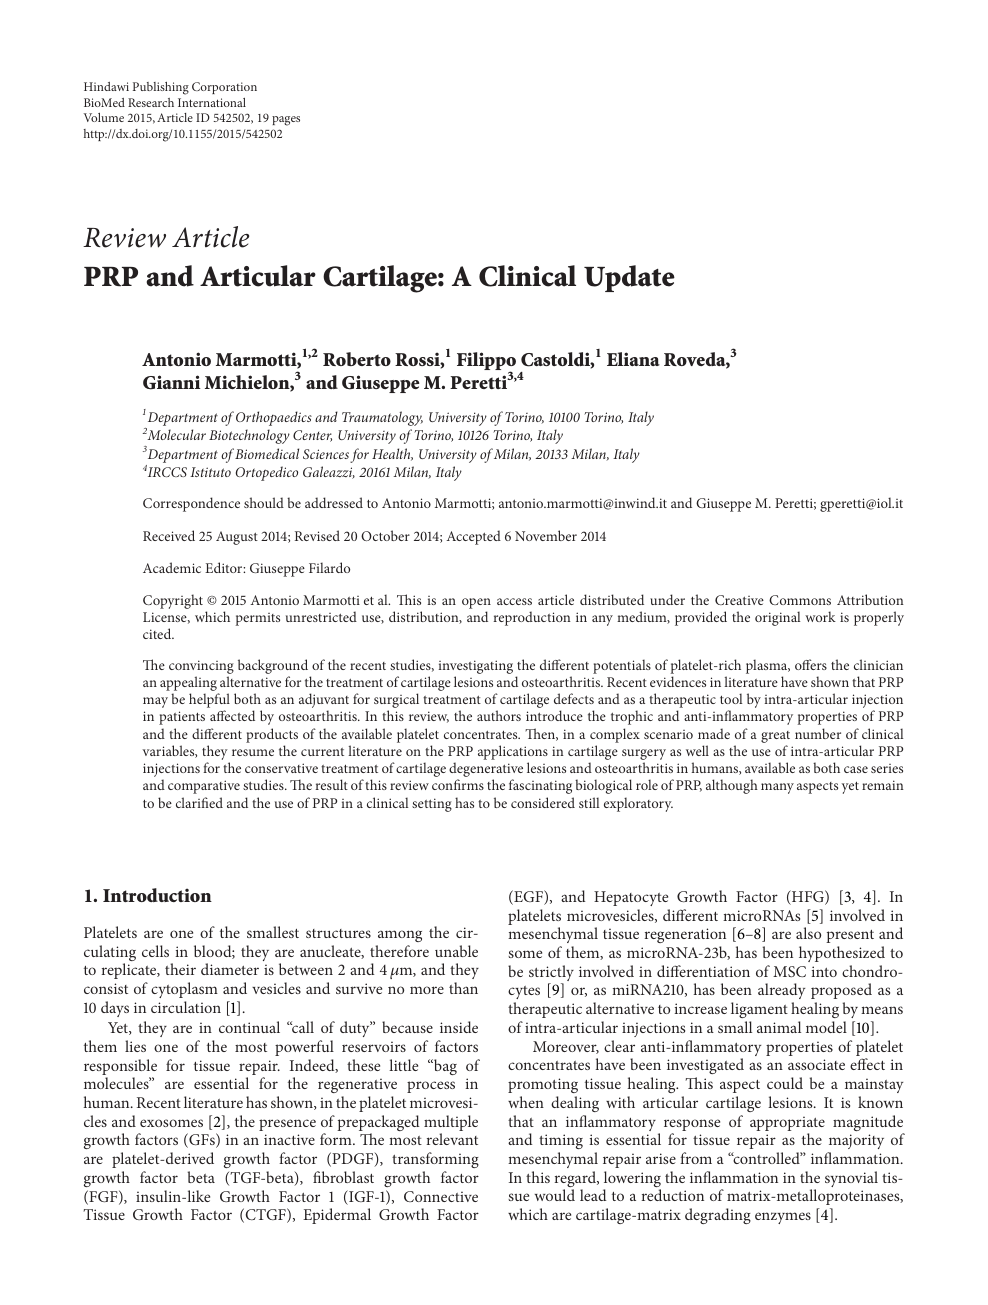 PRP and Articular Cartilage: A Clinical Update – topic of research